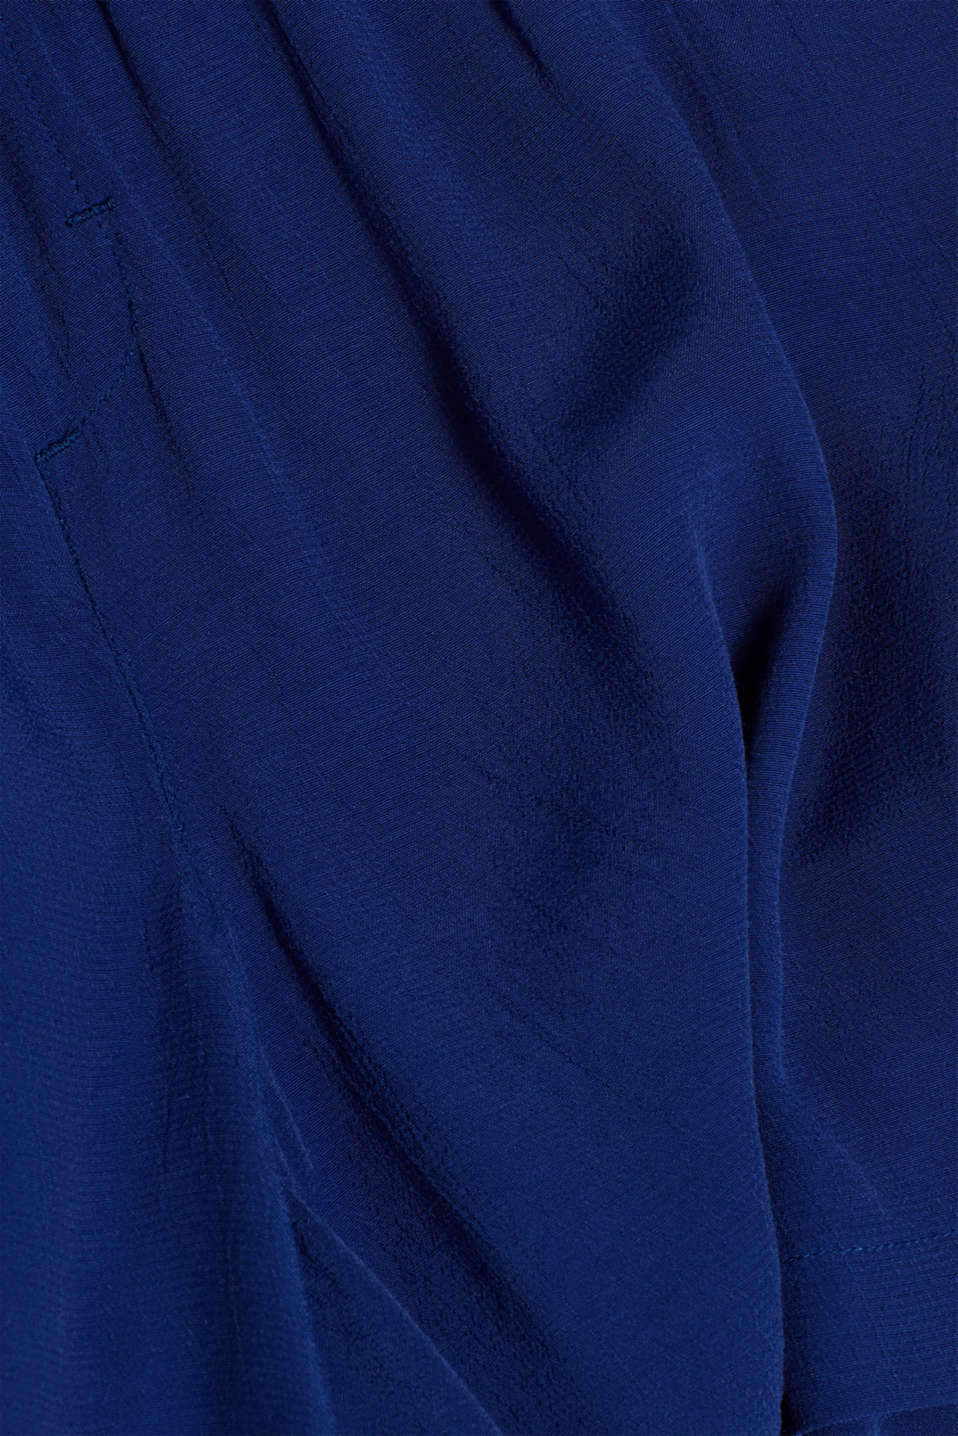 Crêpe shorts with a tie-around belt and under-bump waistband, LCDARK BLUE, detail image number 4